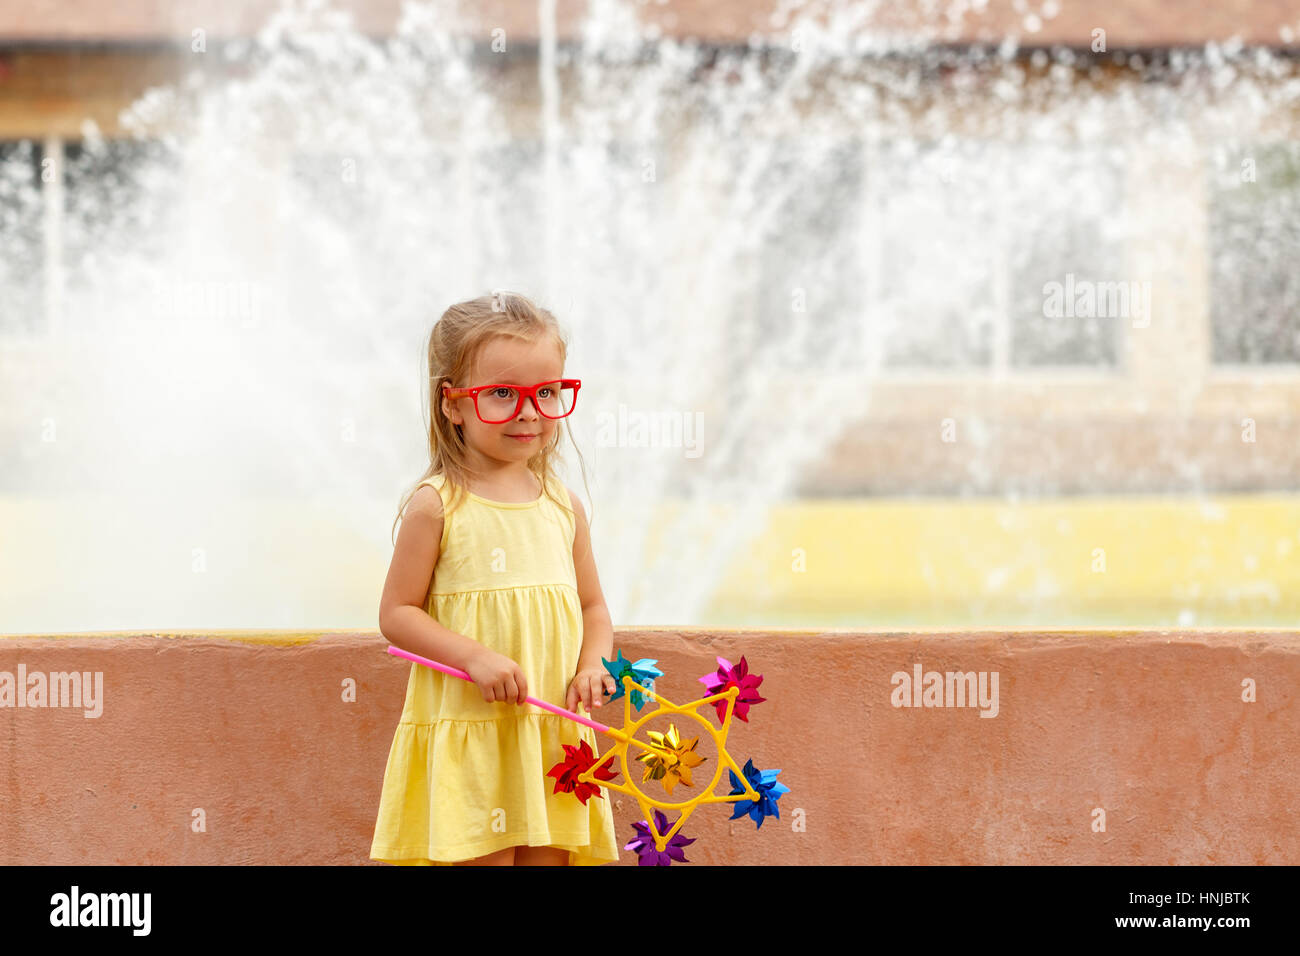 Cute little girl holding a pinwheel in hand. A walk in the summer park near the city fountain. Summer vacation. Stock Photo